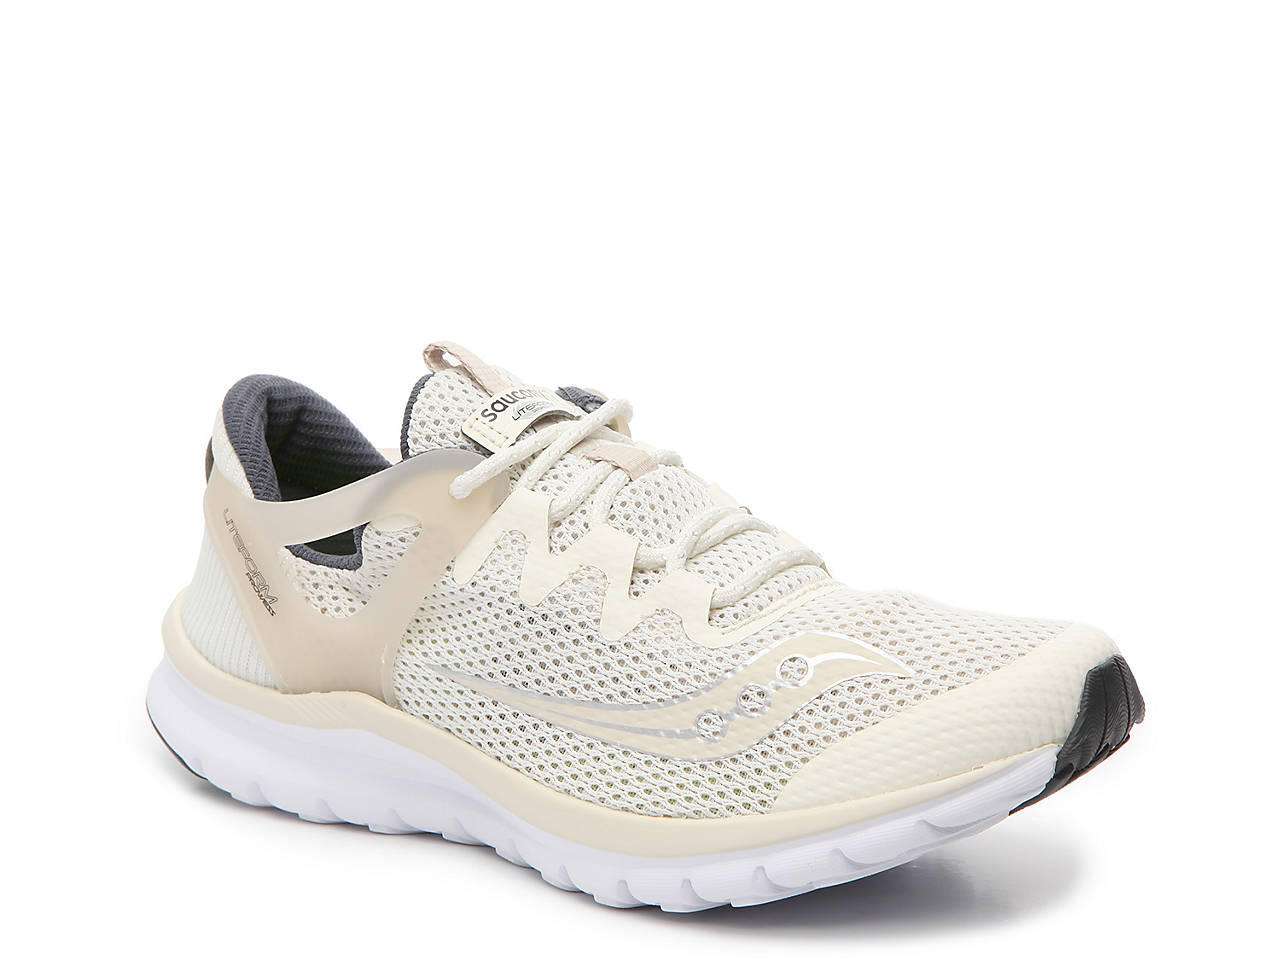 Prowess Prowess Women's Shoe Prowess Running Running Shoe Women's Lightweight Shoe Lightweight Lightweight Running gf7bvY6y